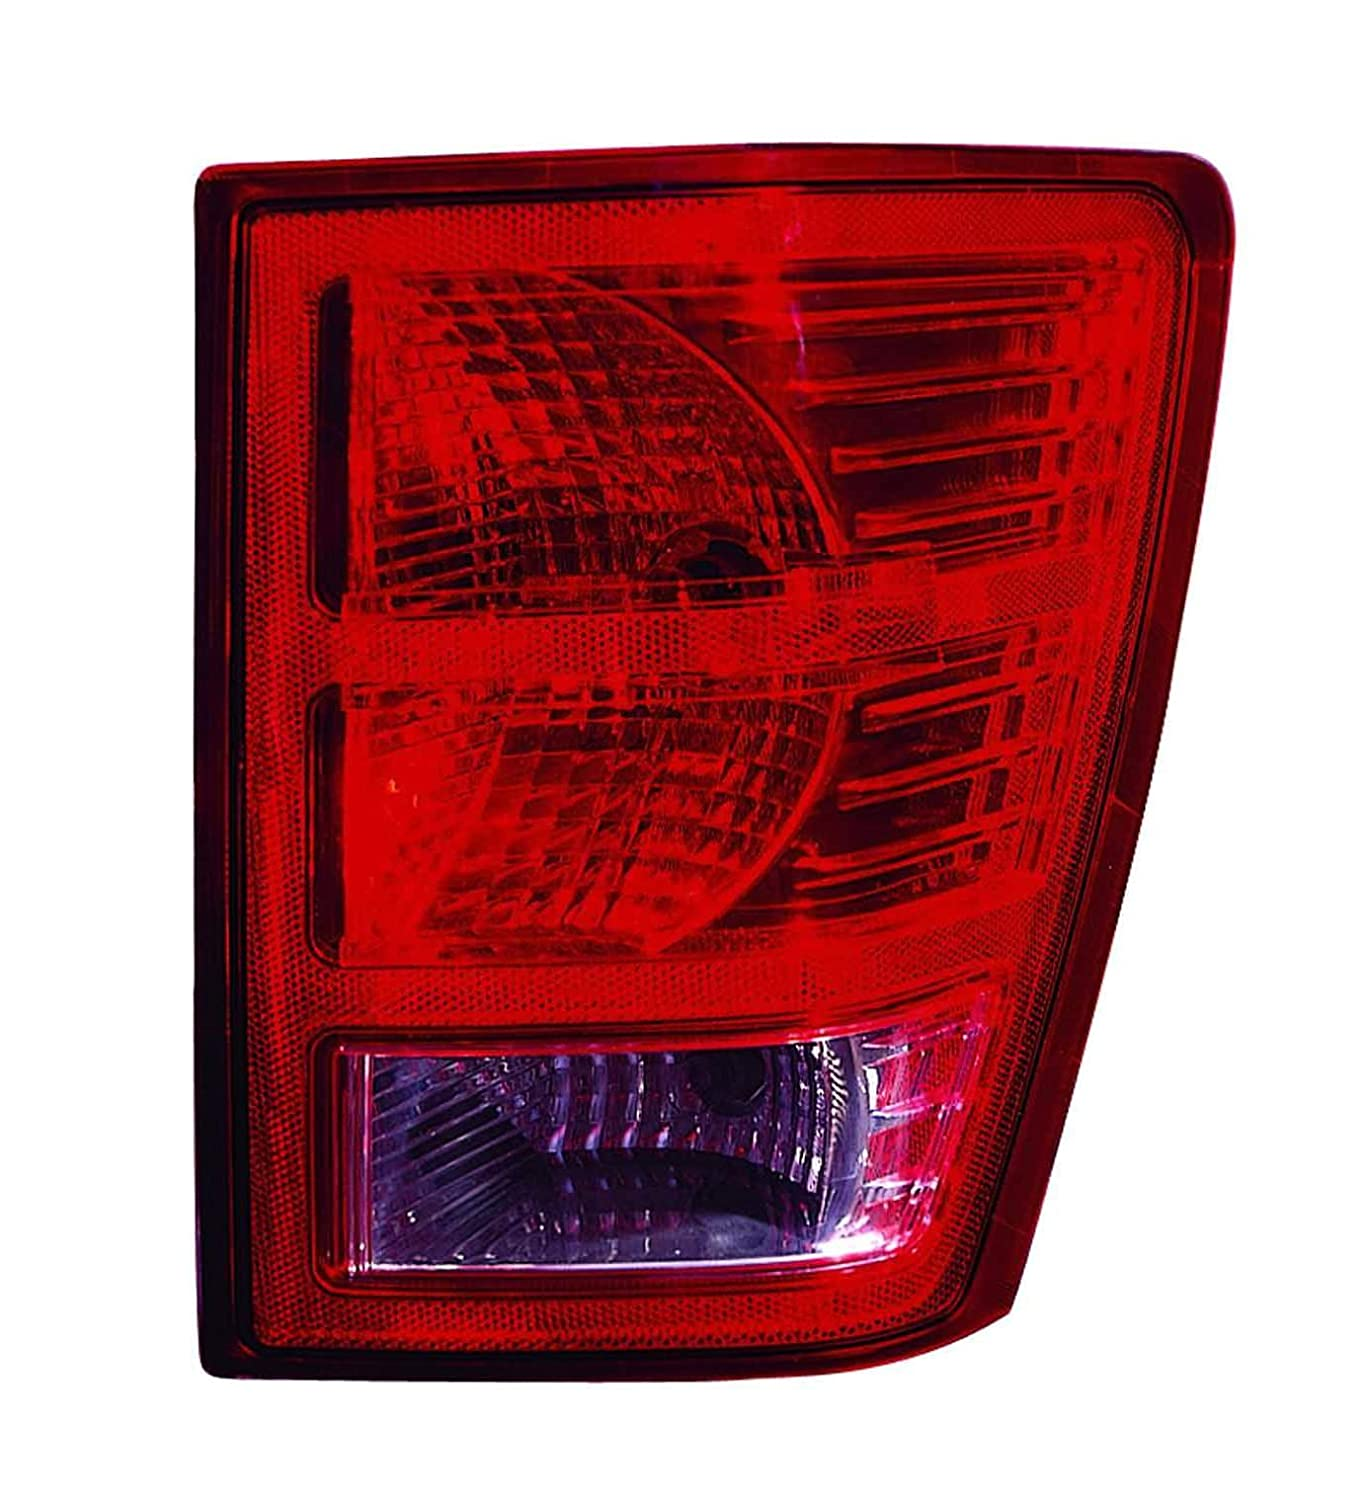 Depo 333-1950R-AS Jeep Grand Cherokee Passenger Side Replacement Taillight Assembly 02-00-333-1950R-AS